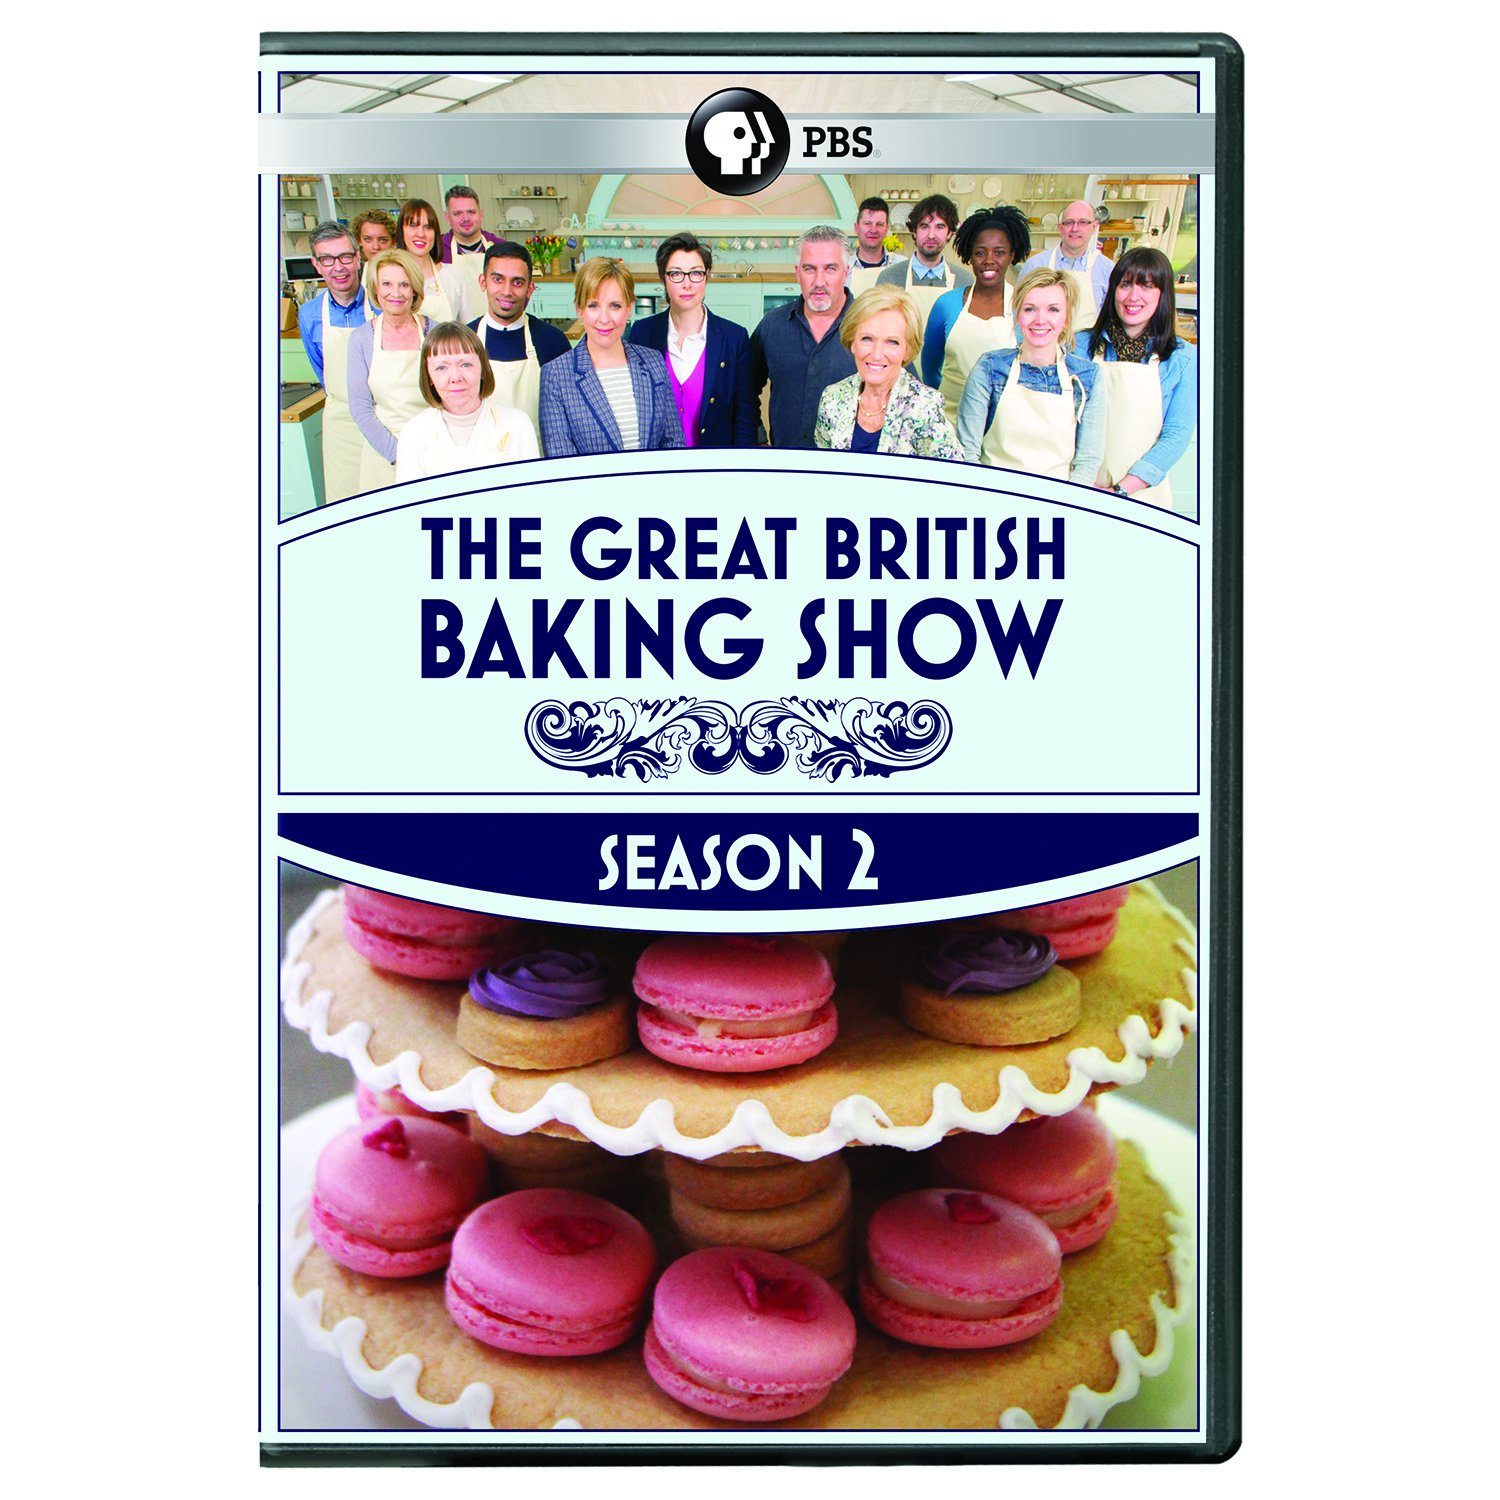 Great British Baking Show Season 2 DVD